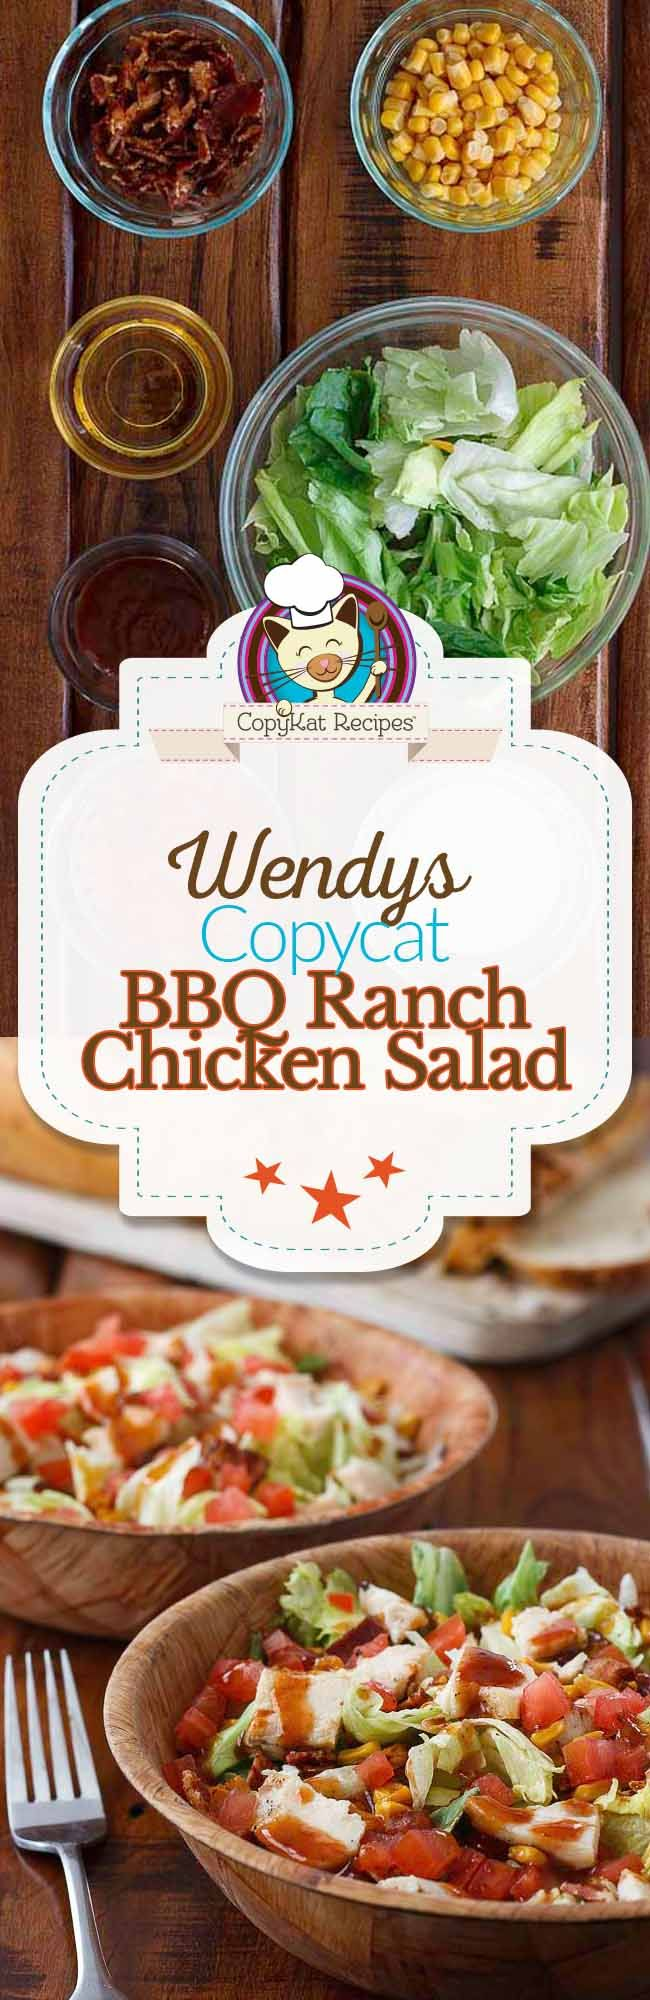 Make a meal out of a salad with this copycat recipe for Wendy''s BBQ Ranch Chicken Salad.